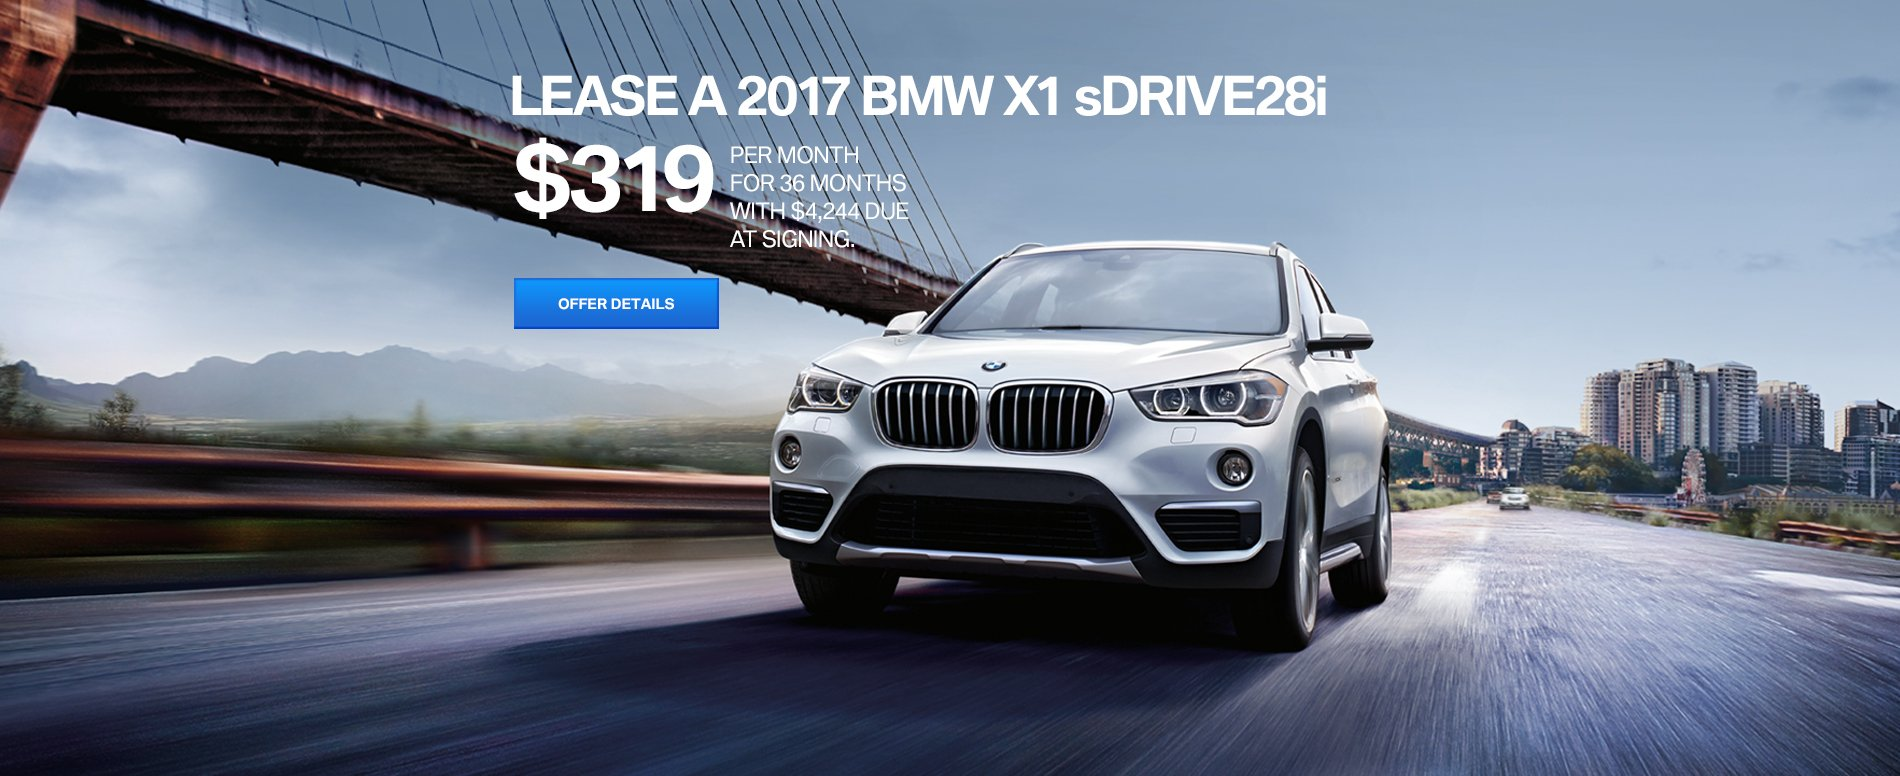 LEASE A 2017 BMW X1 sDRIVE28i FOR $319/MO FOR 36 MONTHS, WITH $4